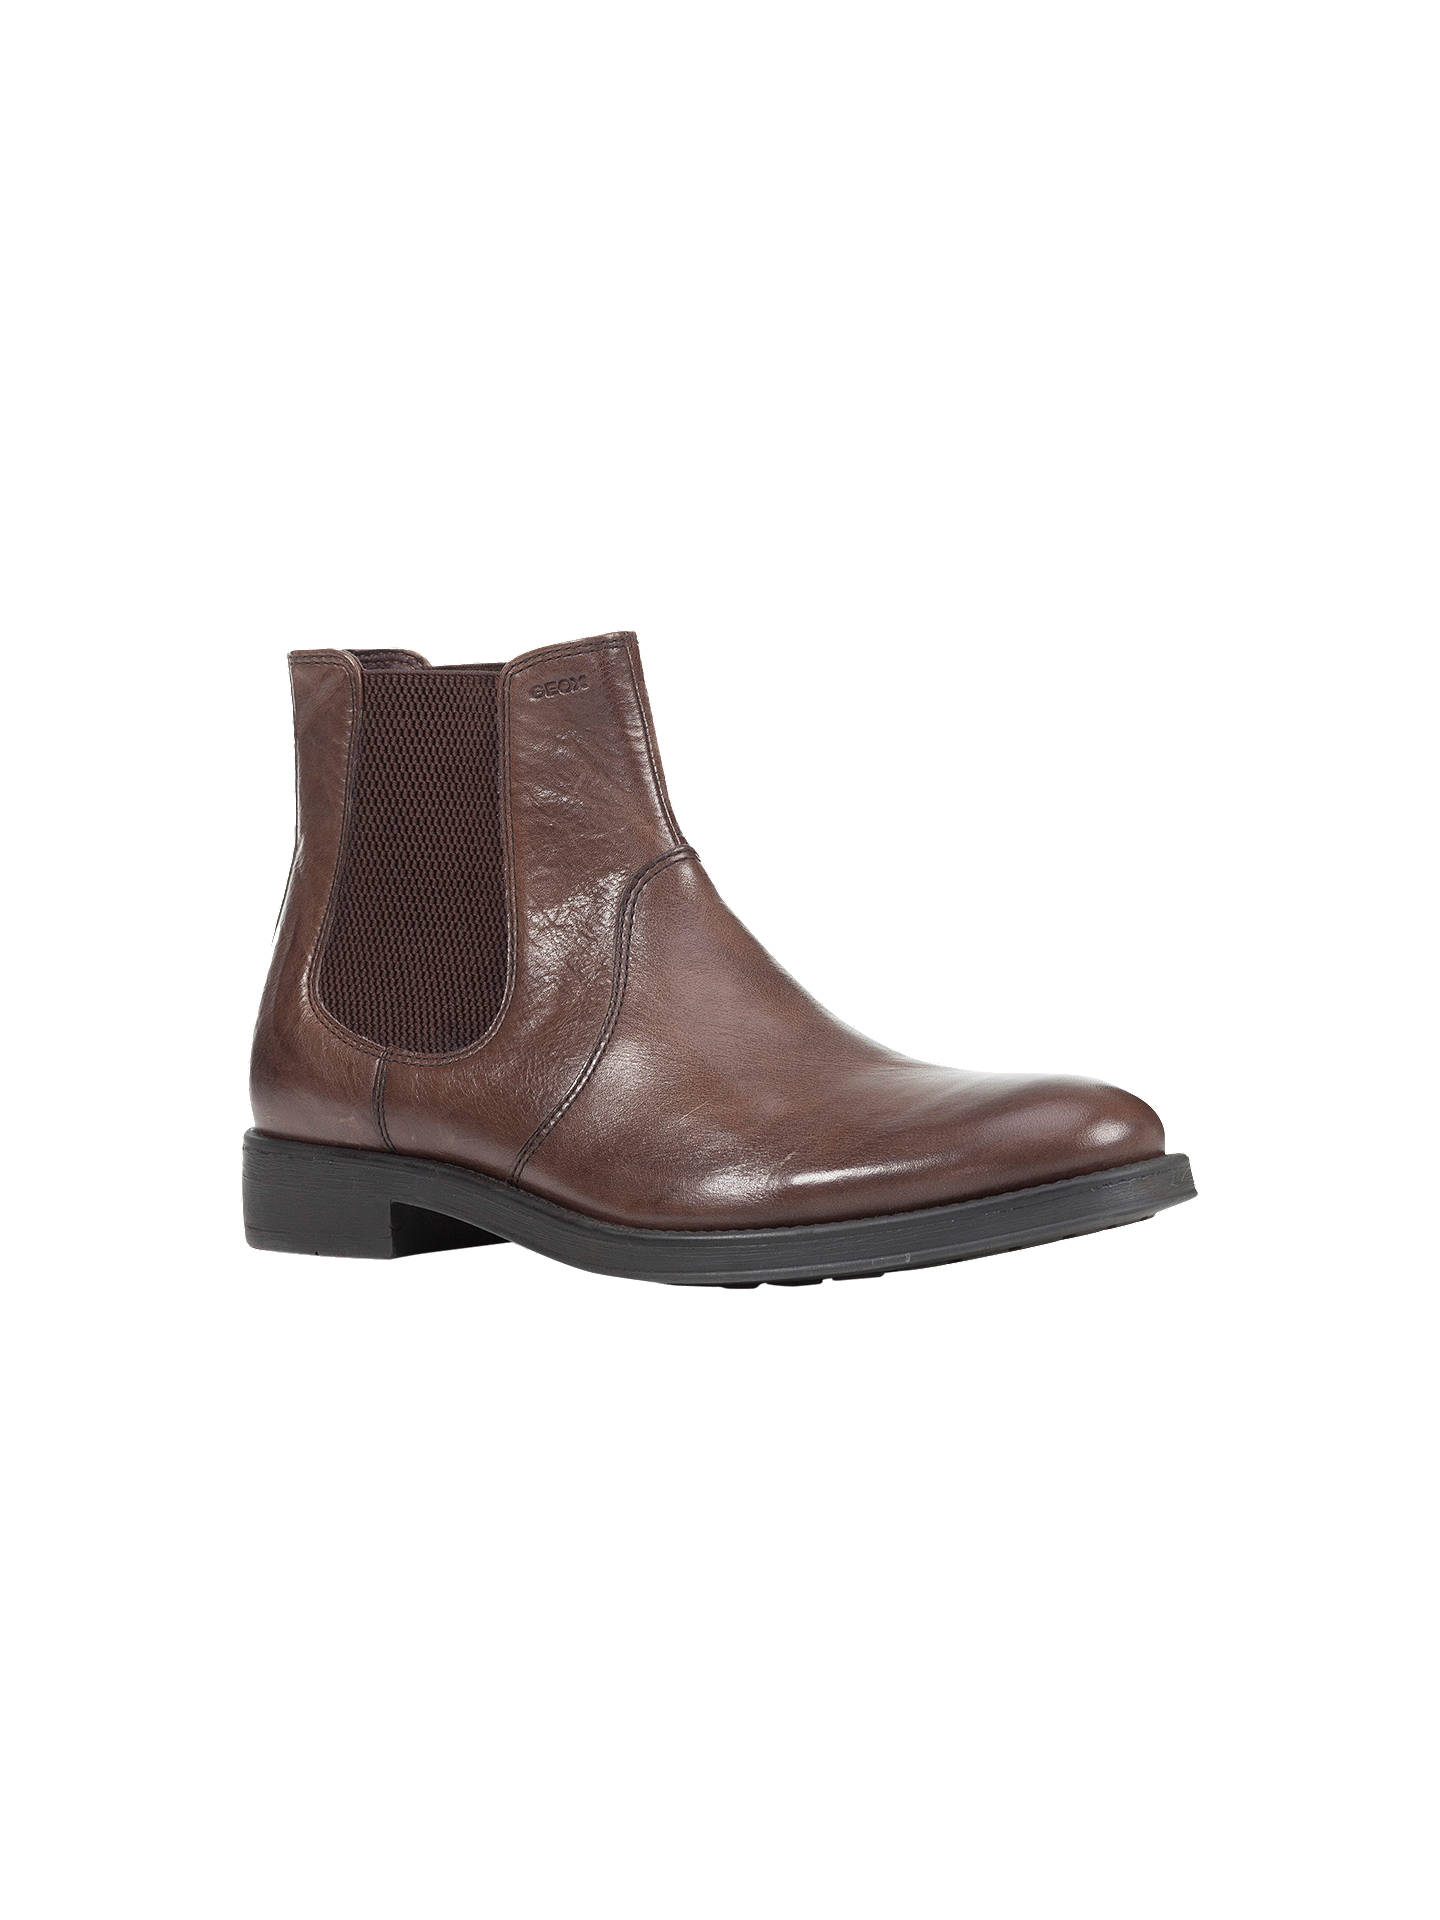 new season new varieties favorable price Geox Blaxe Leather Chelsea Boots at John Lewis & Partners